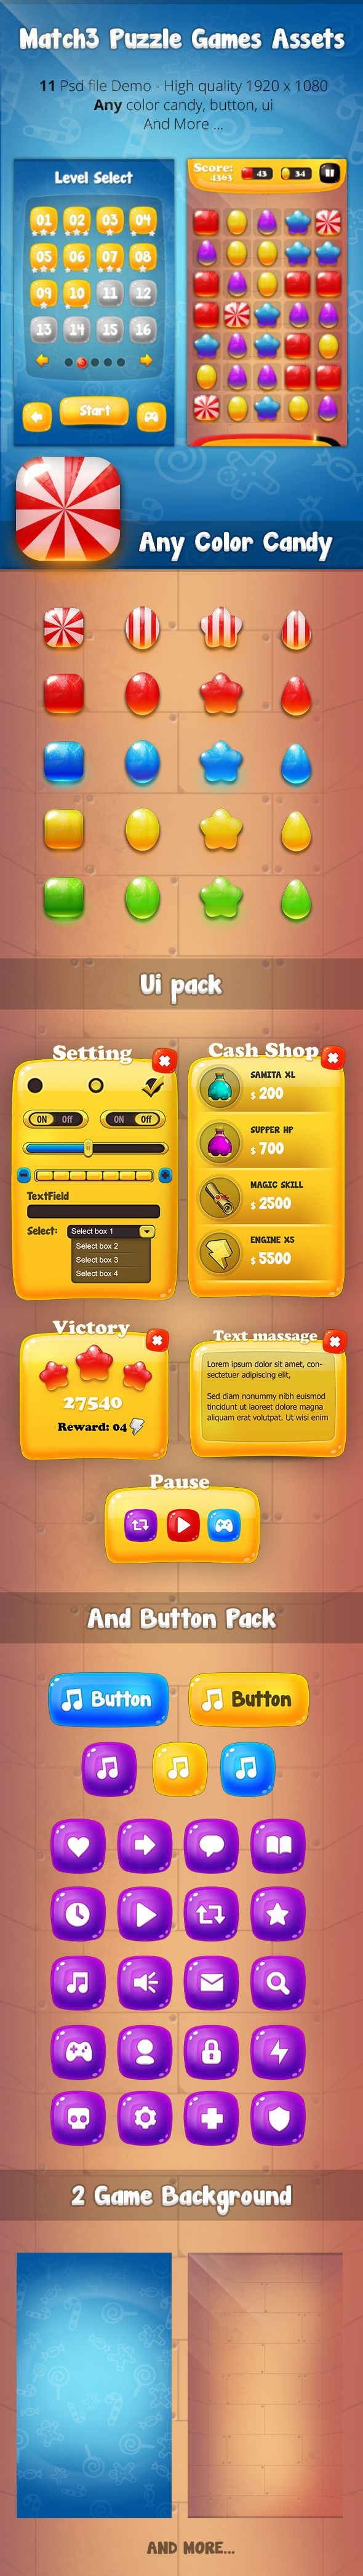 Match3 Puzzle Games Assets on Behance